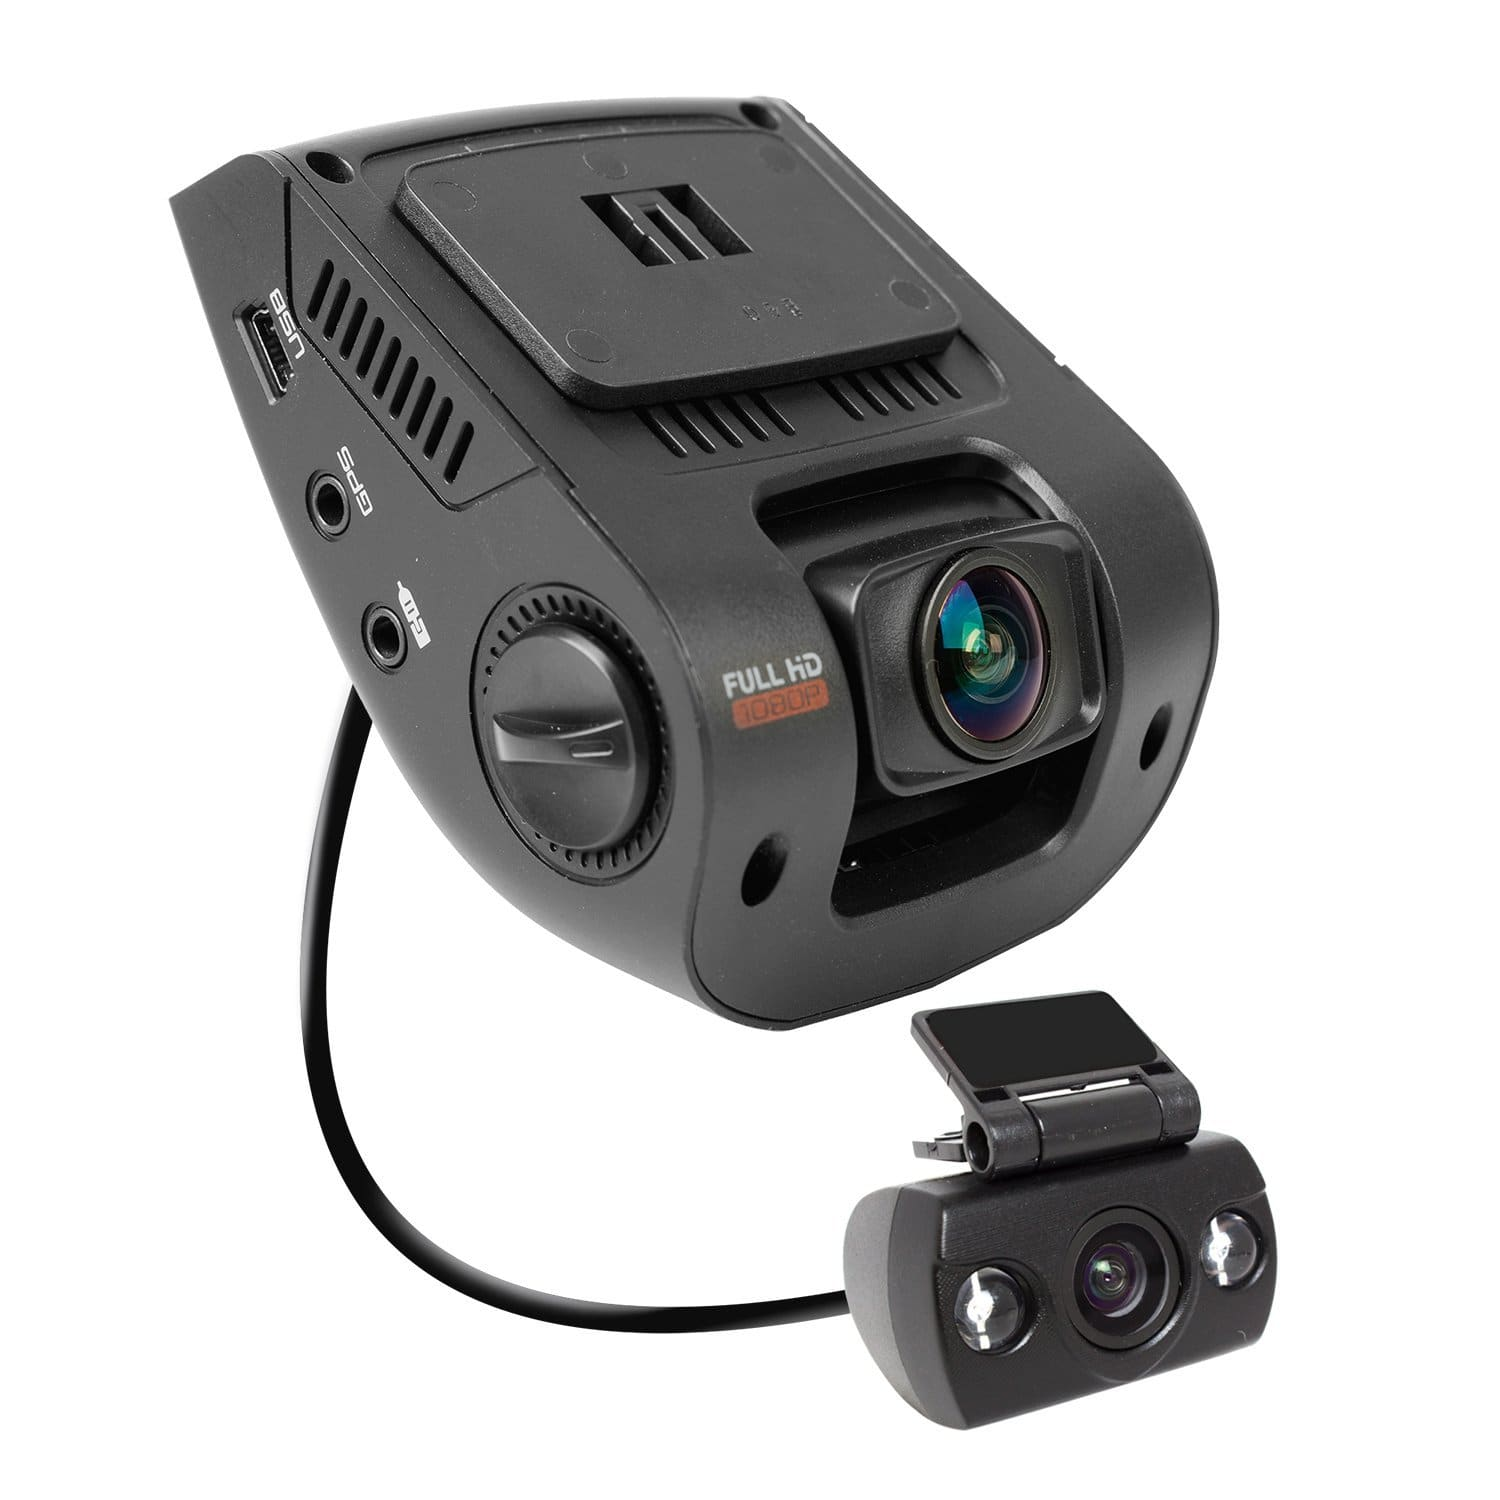 Rexing V1P Dual Channel 1080p Dash Cam $94.49 + Free Shipping @ Amazon